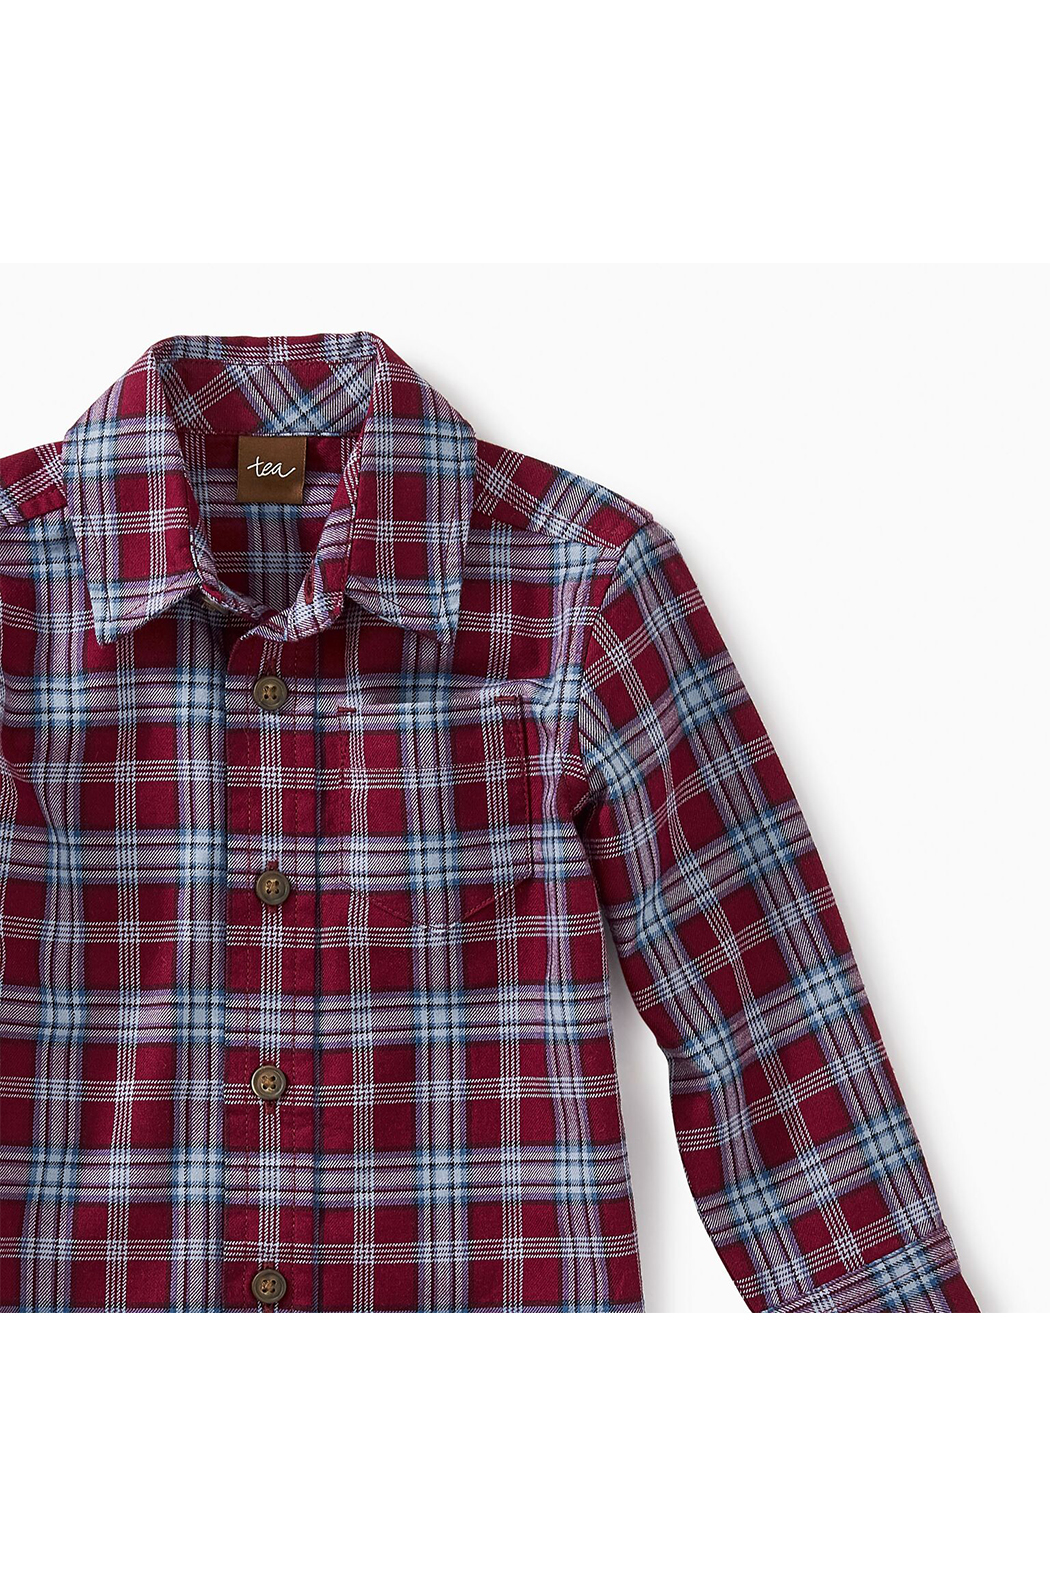 Tea Collection Lakeshore Plaid Baby Button Shirt - Front Full Image